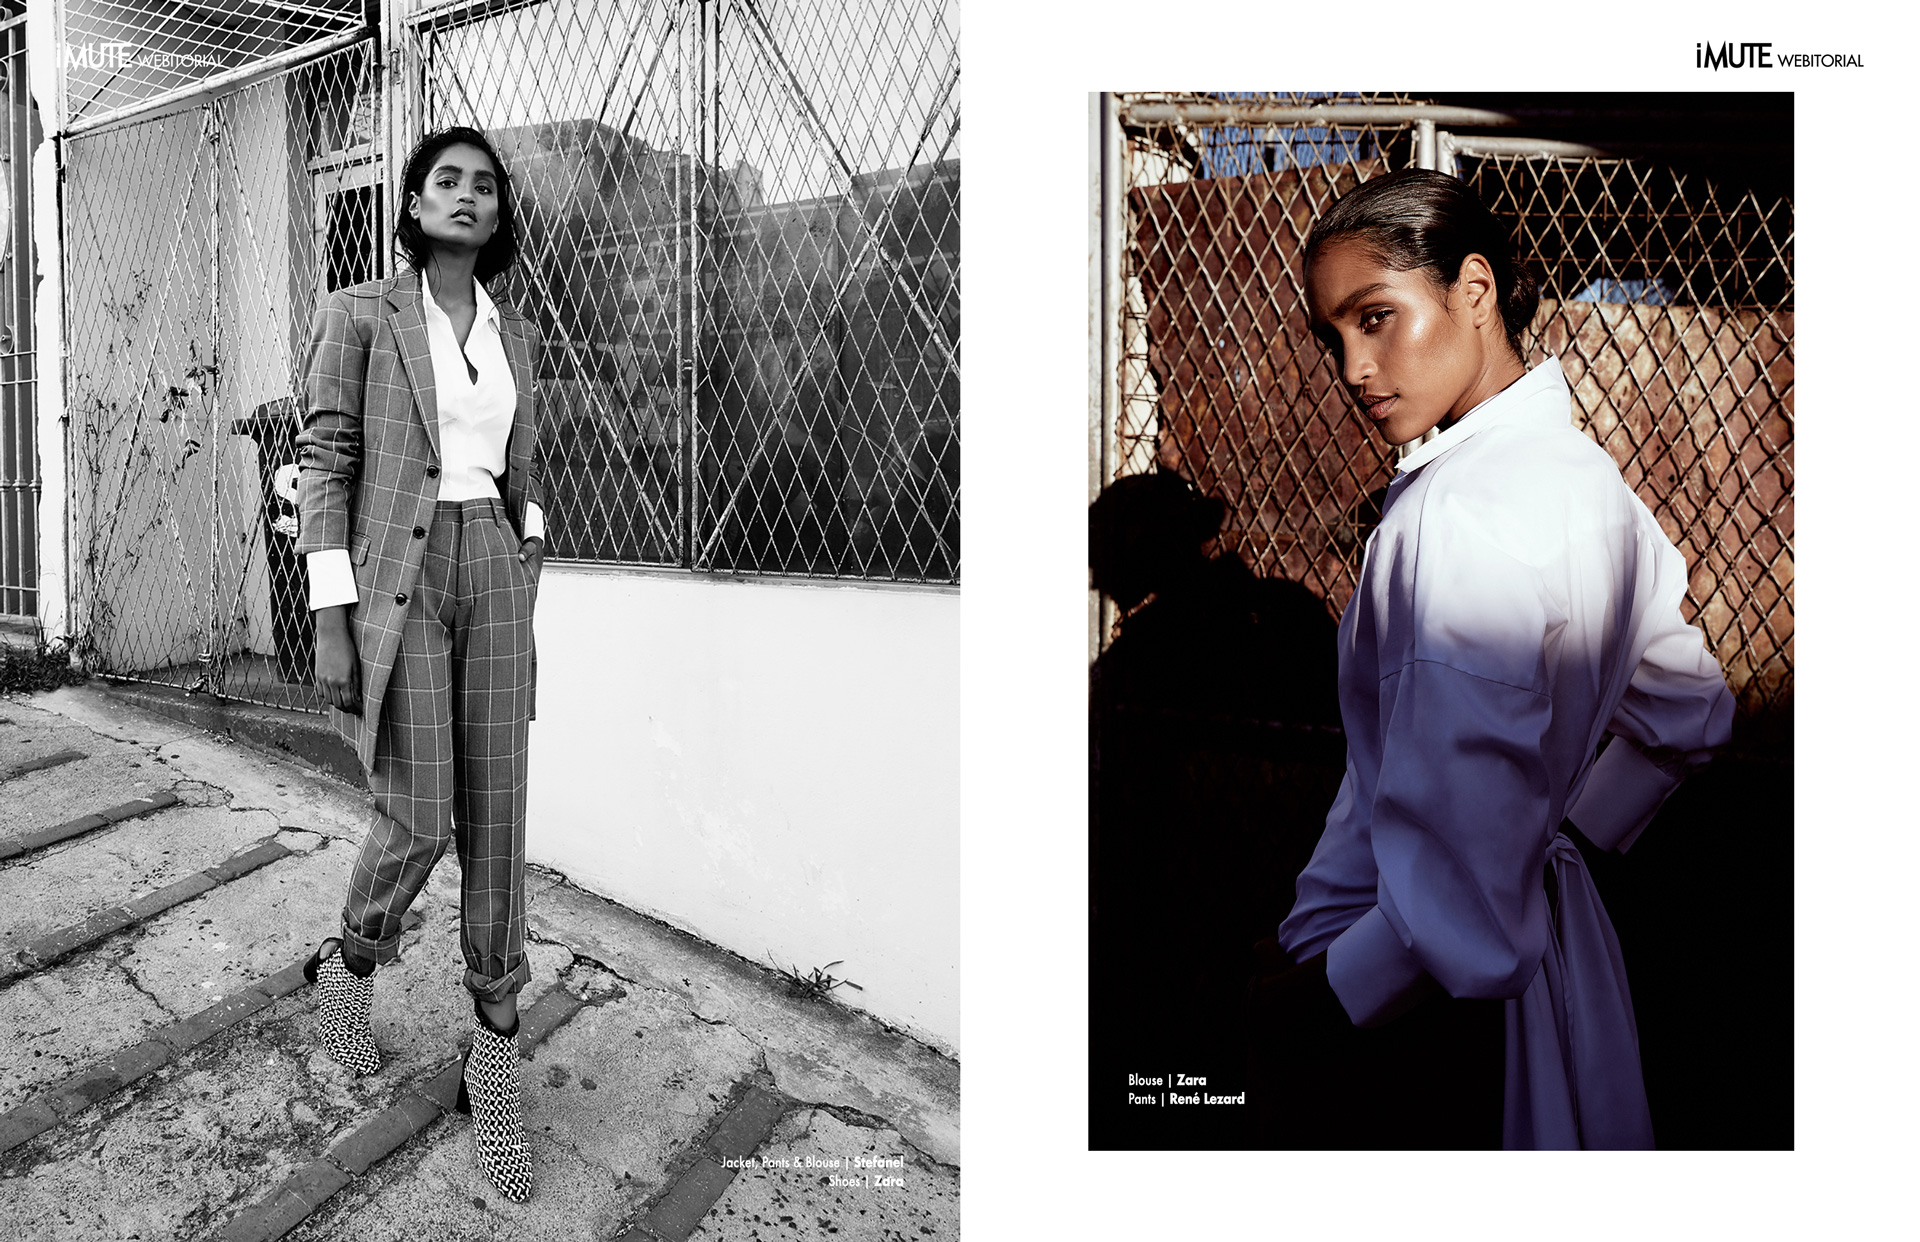 DONNA DO MORRO webitorial for iMute Magazine Photographer | Maddy Grace Model | Robyn @ 20 Model Management Makeup & Hair | Vanessa Walkalla Photo Assistant | Laura Palm